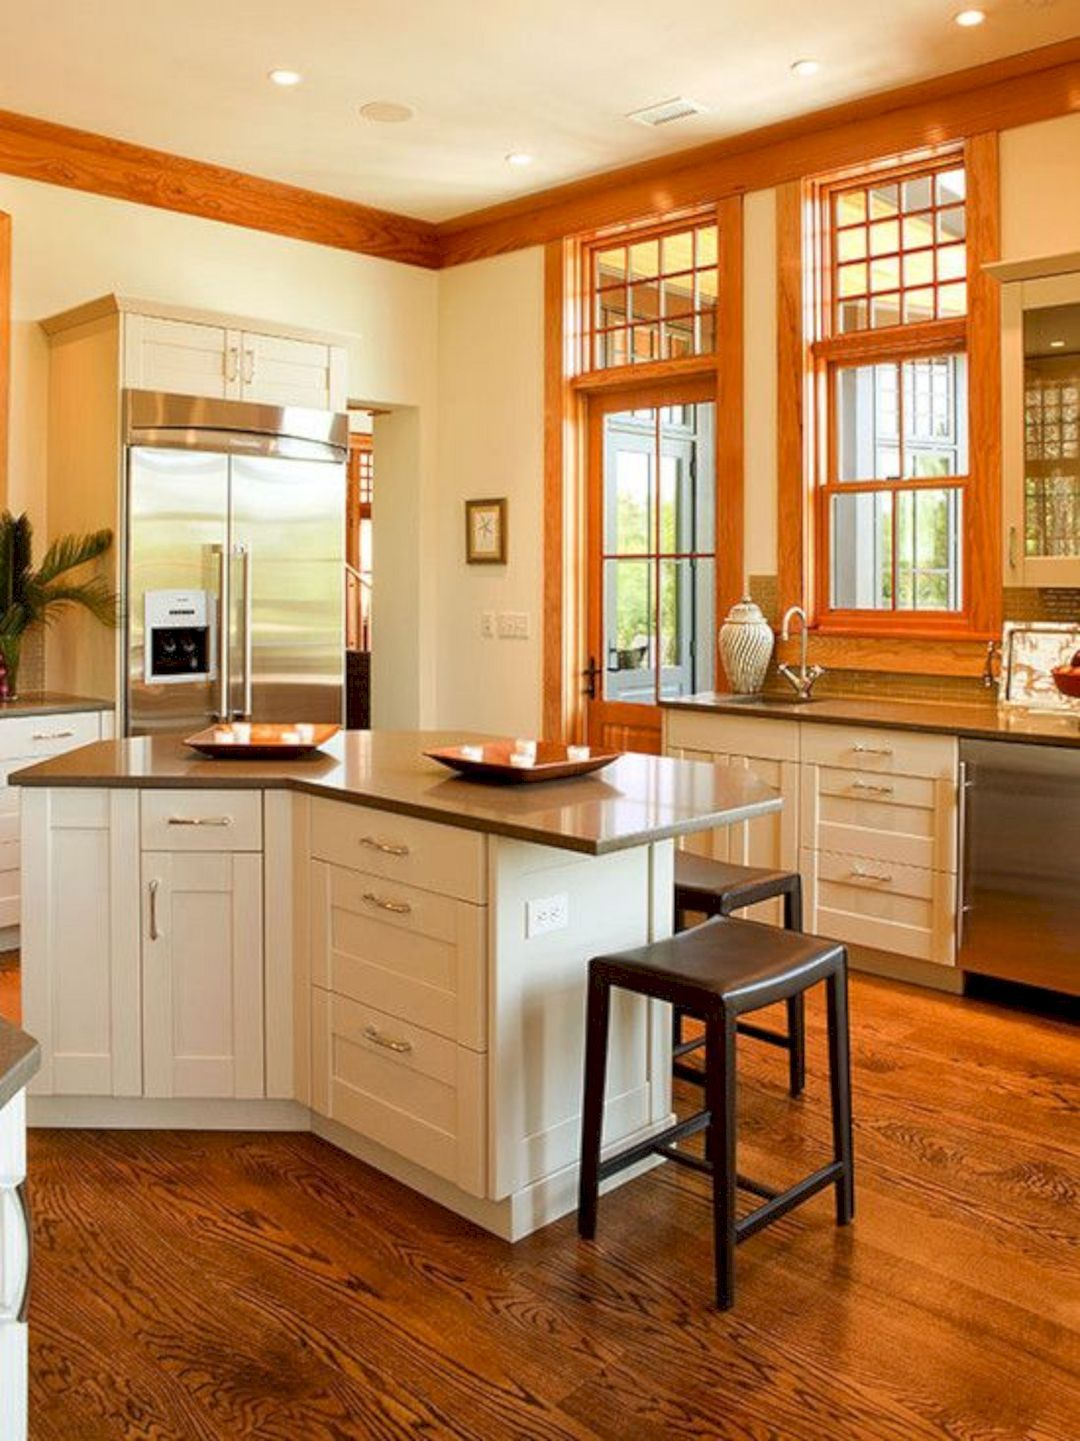 Ideas With Oak Kitchen Cabinetry Html on kitchens with oak trim, kitchens with oak flooring, kitchens with oak floors,